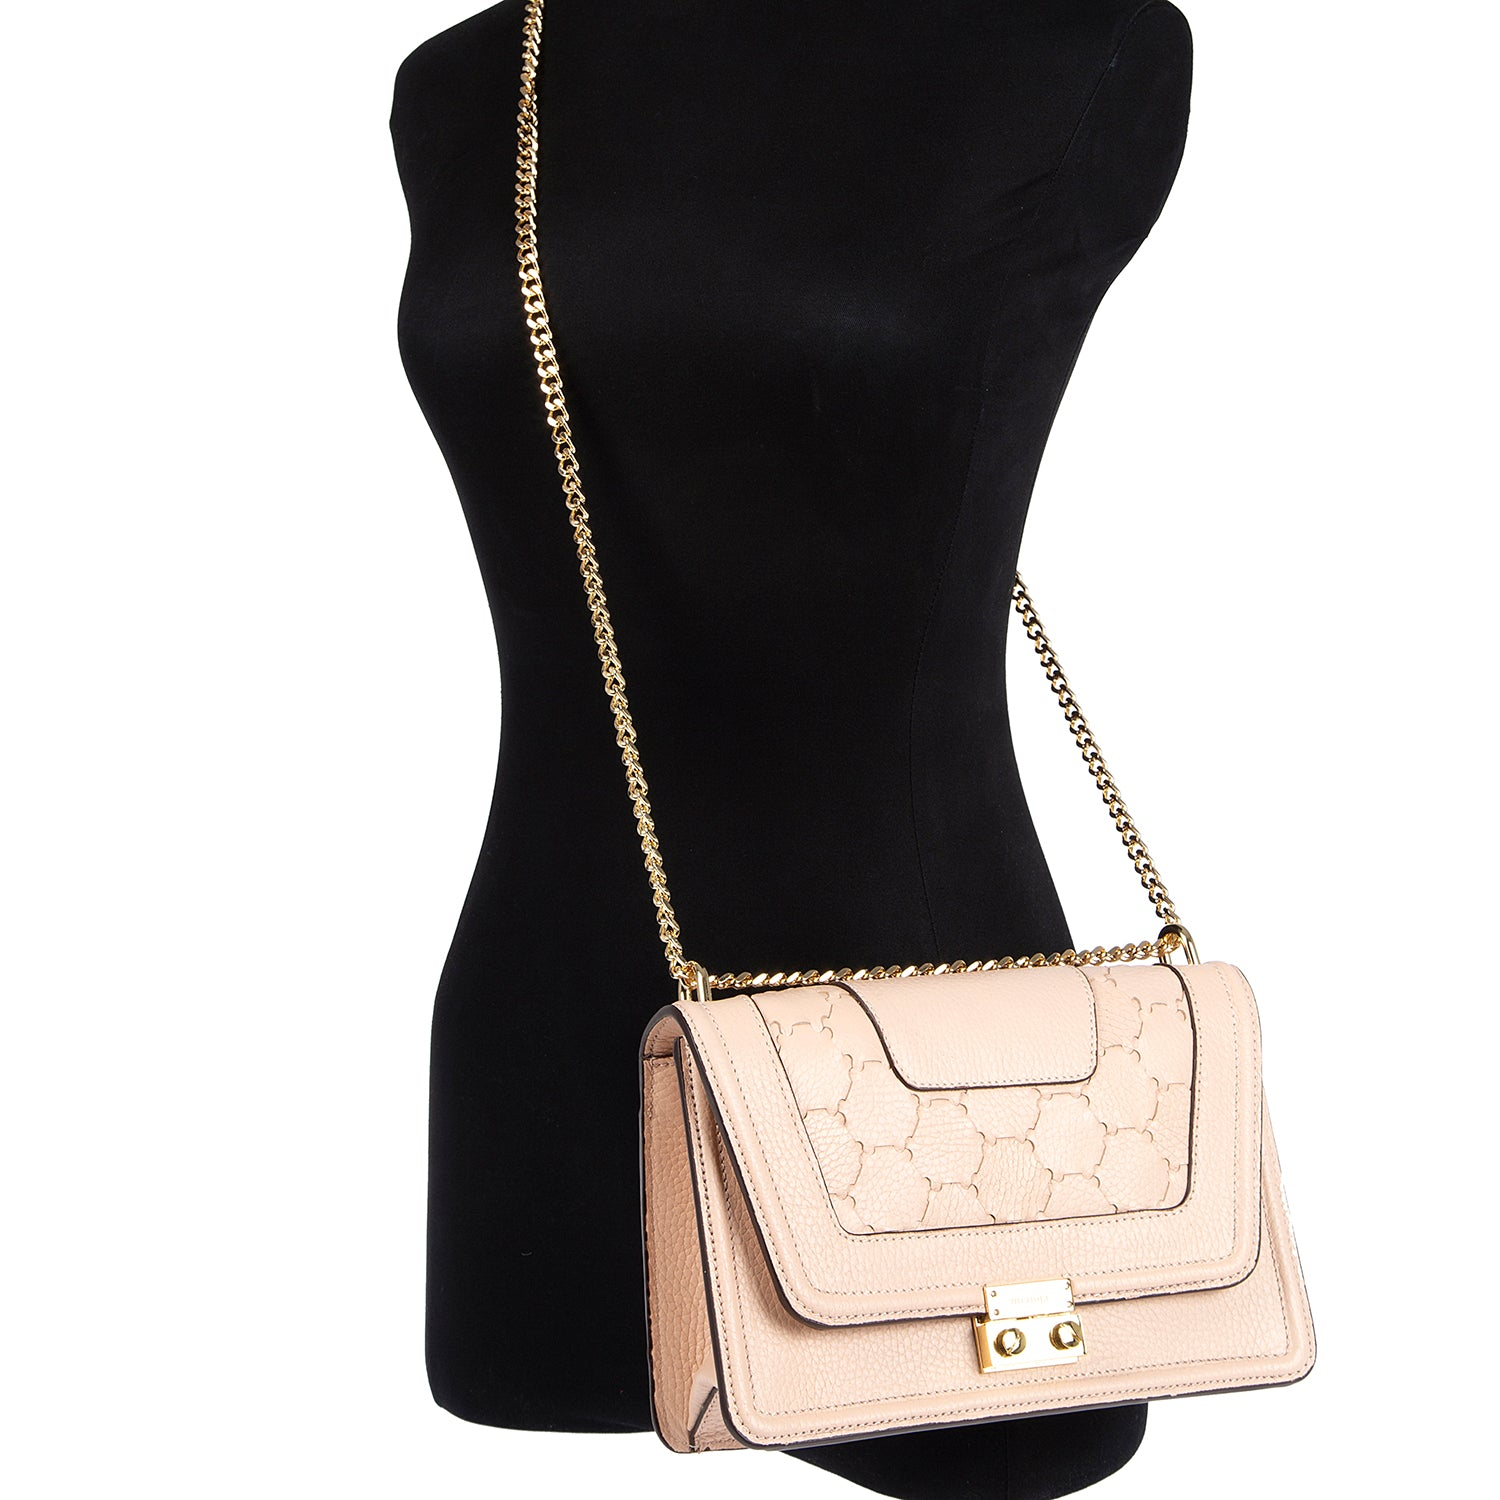 M U A L L A | Leather Shoulder Bag Dust Pink